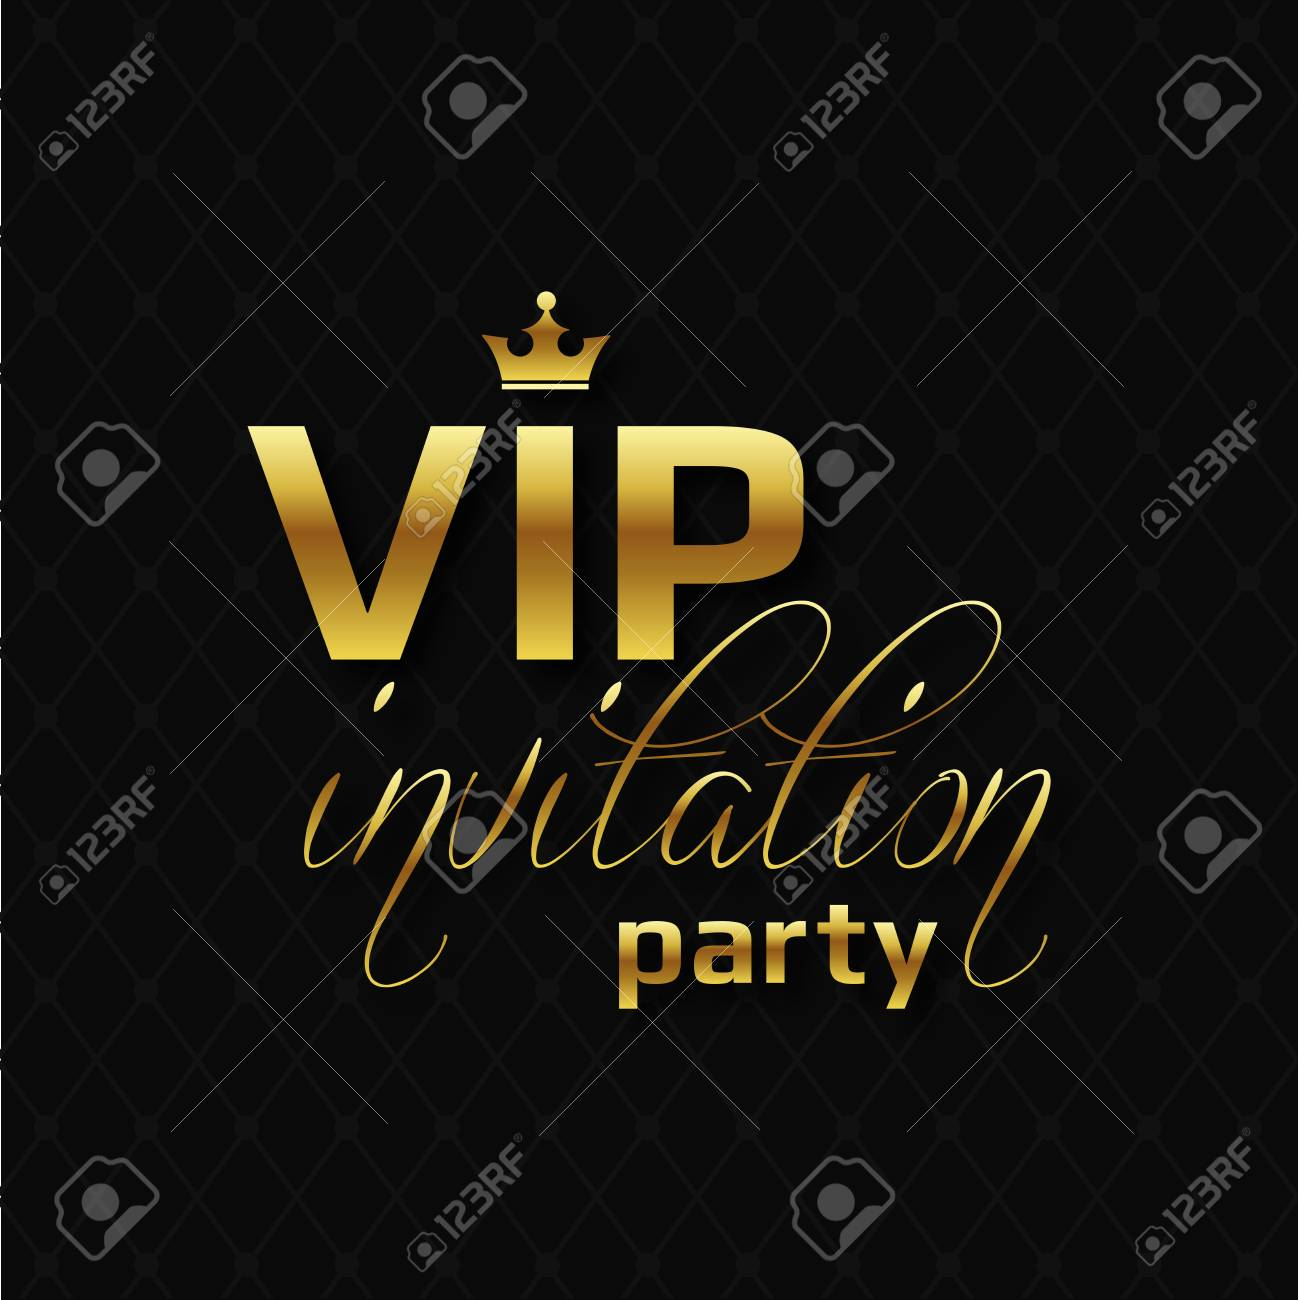 VIP Party Invitation On Golden Letters With Crown. Royalty Free ...